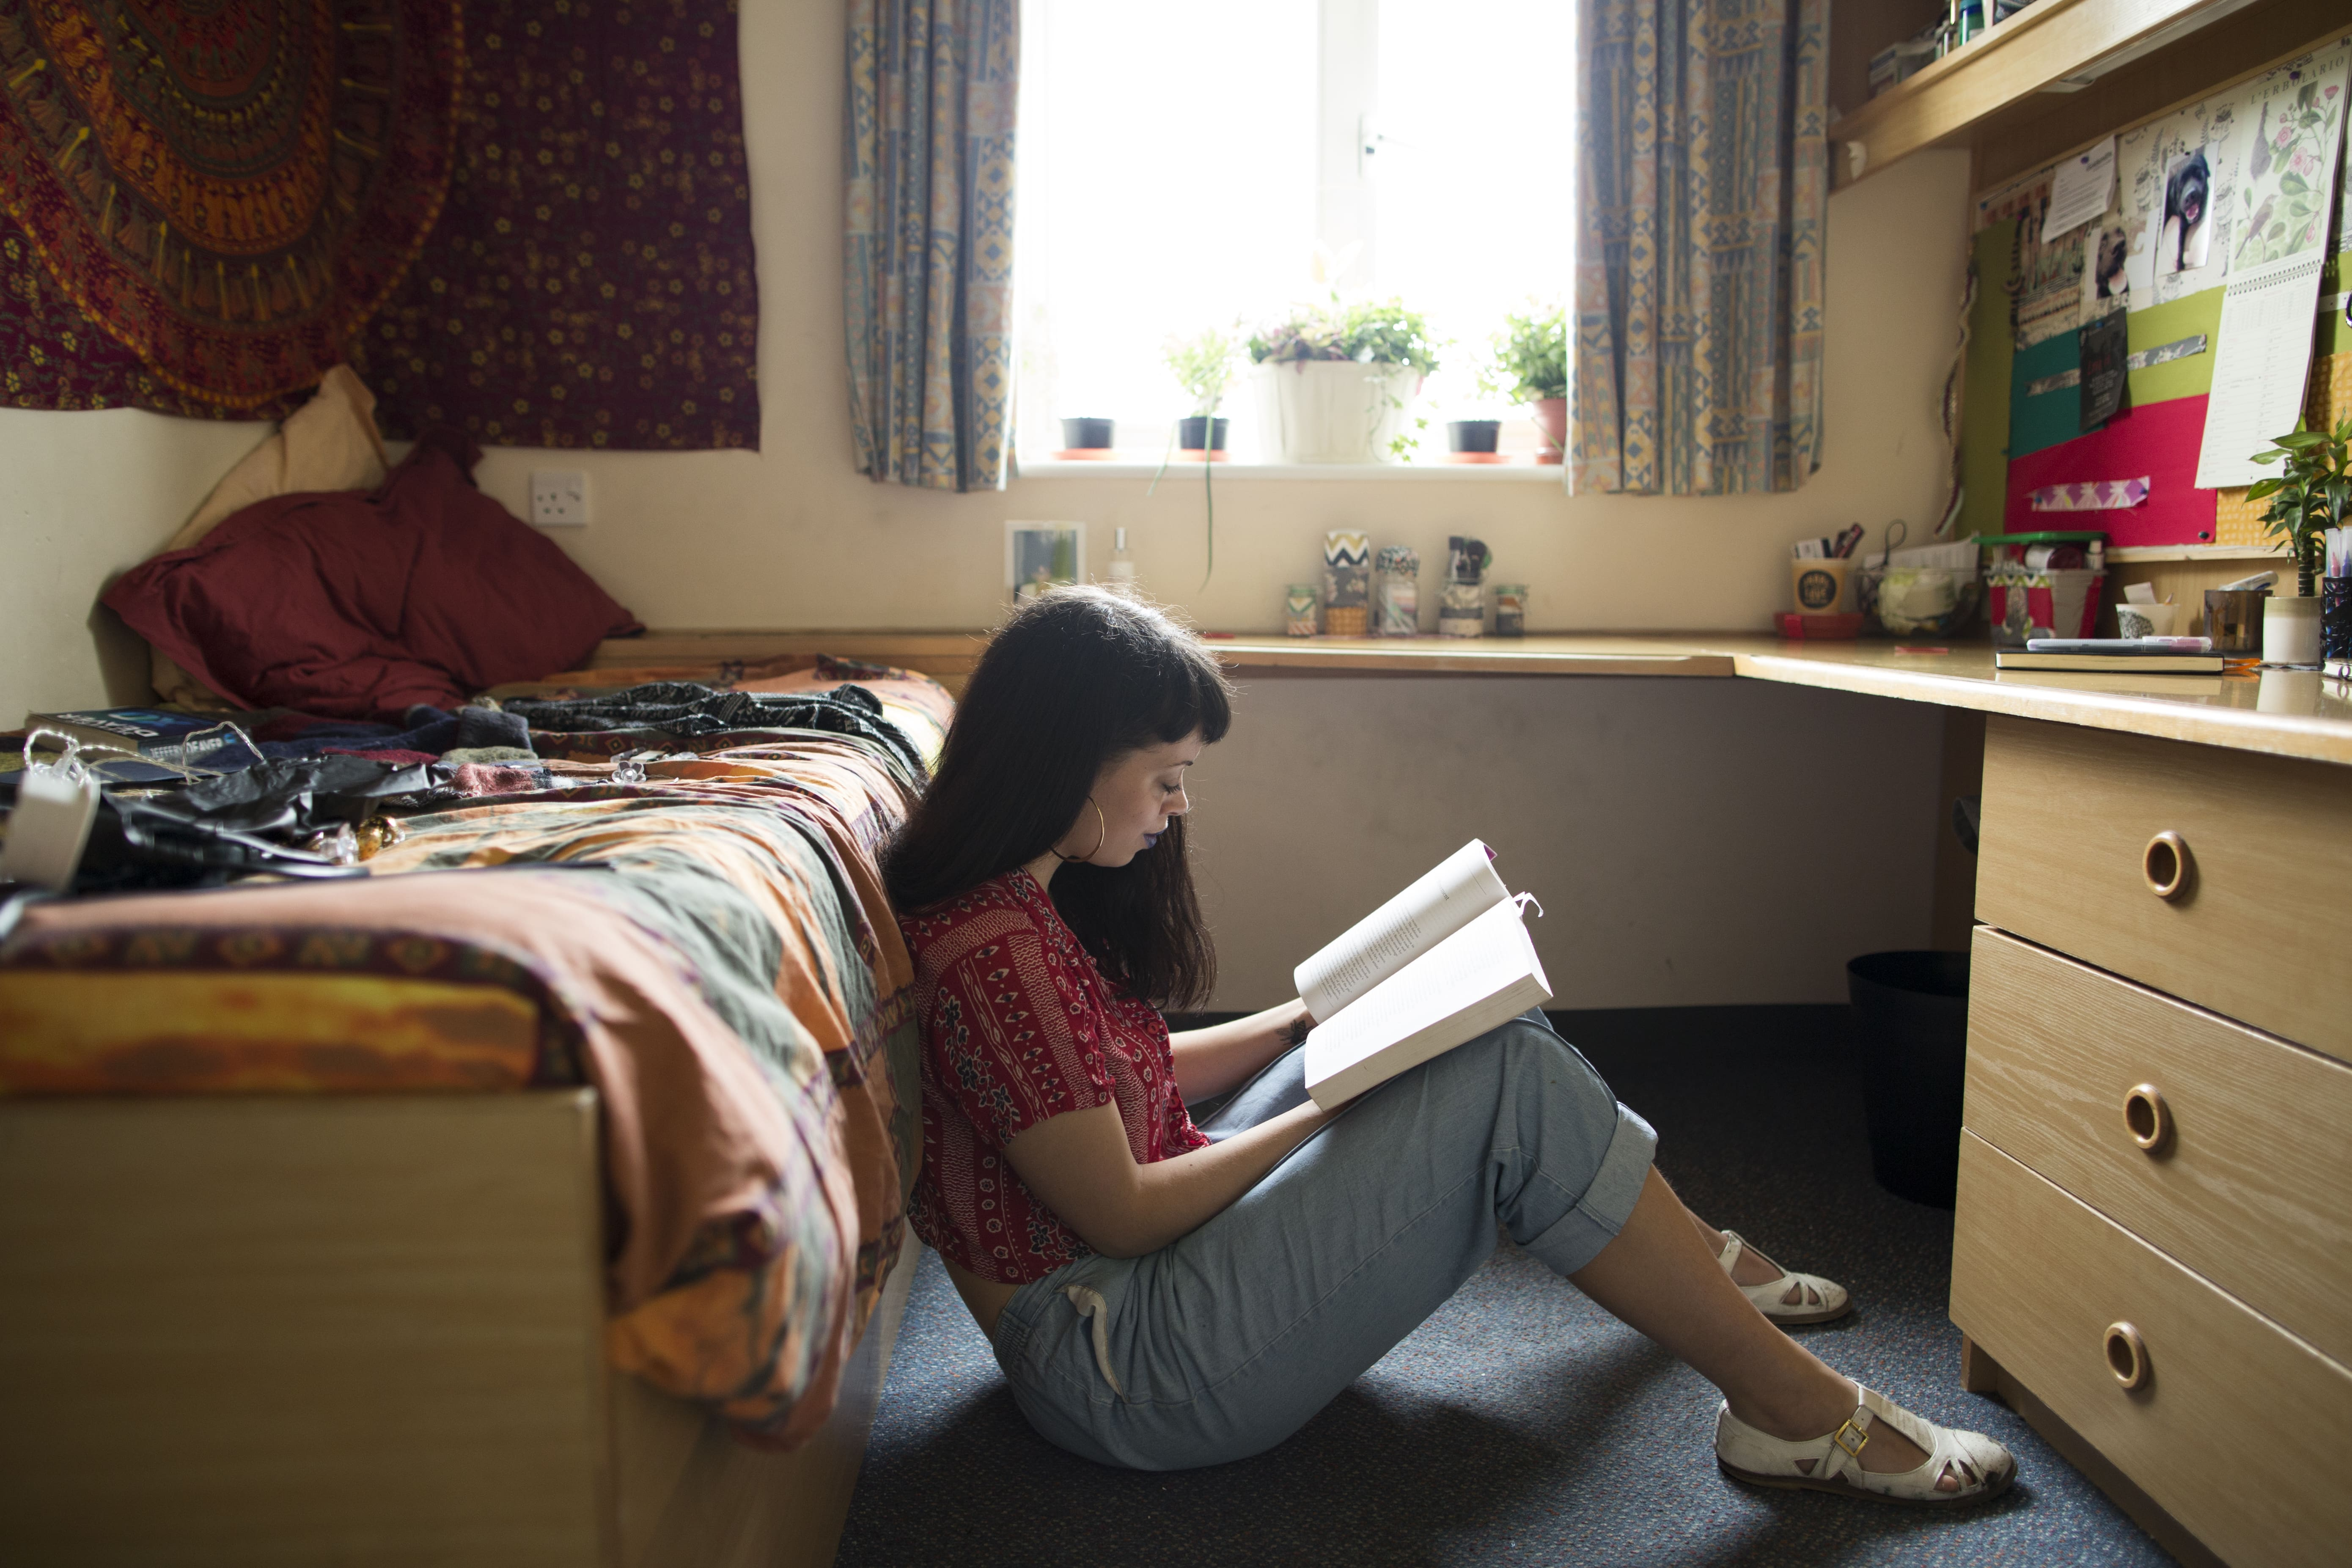 Student reads book in their room